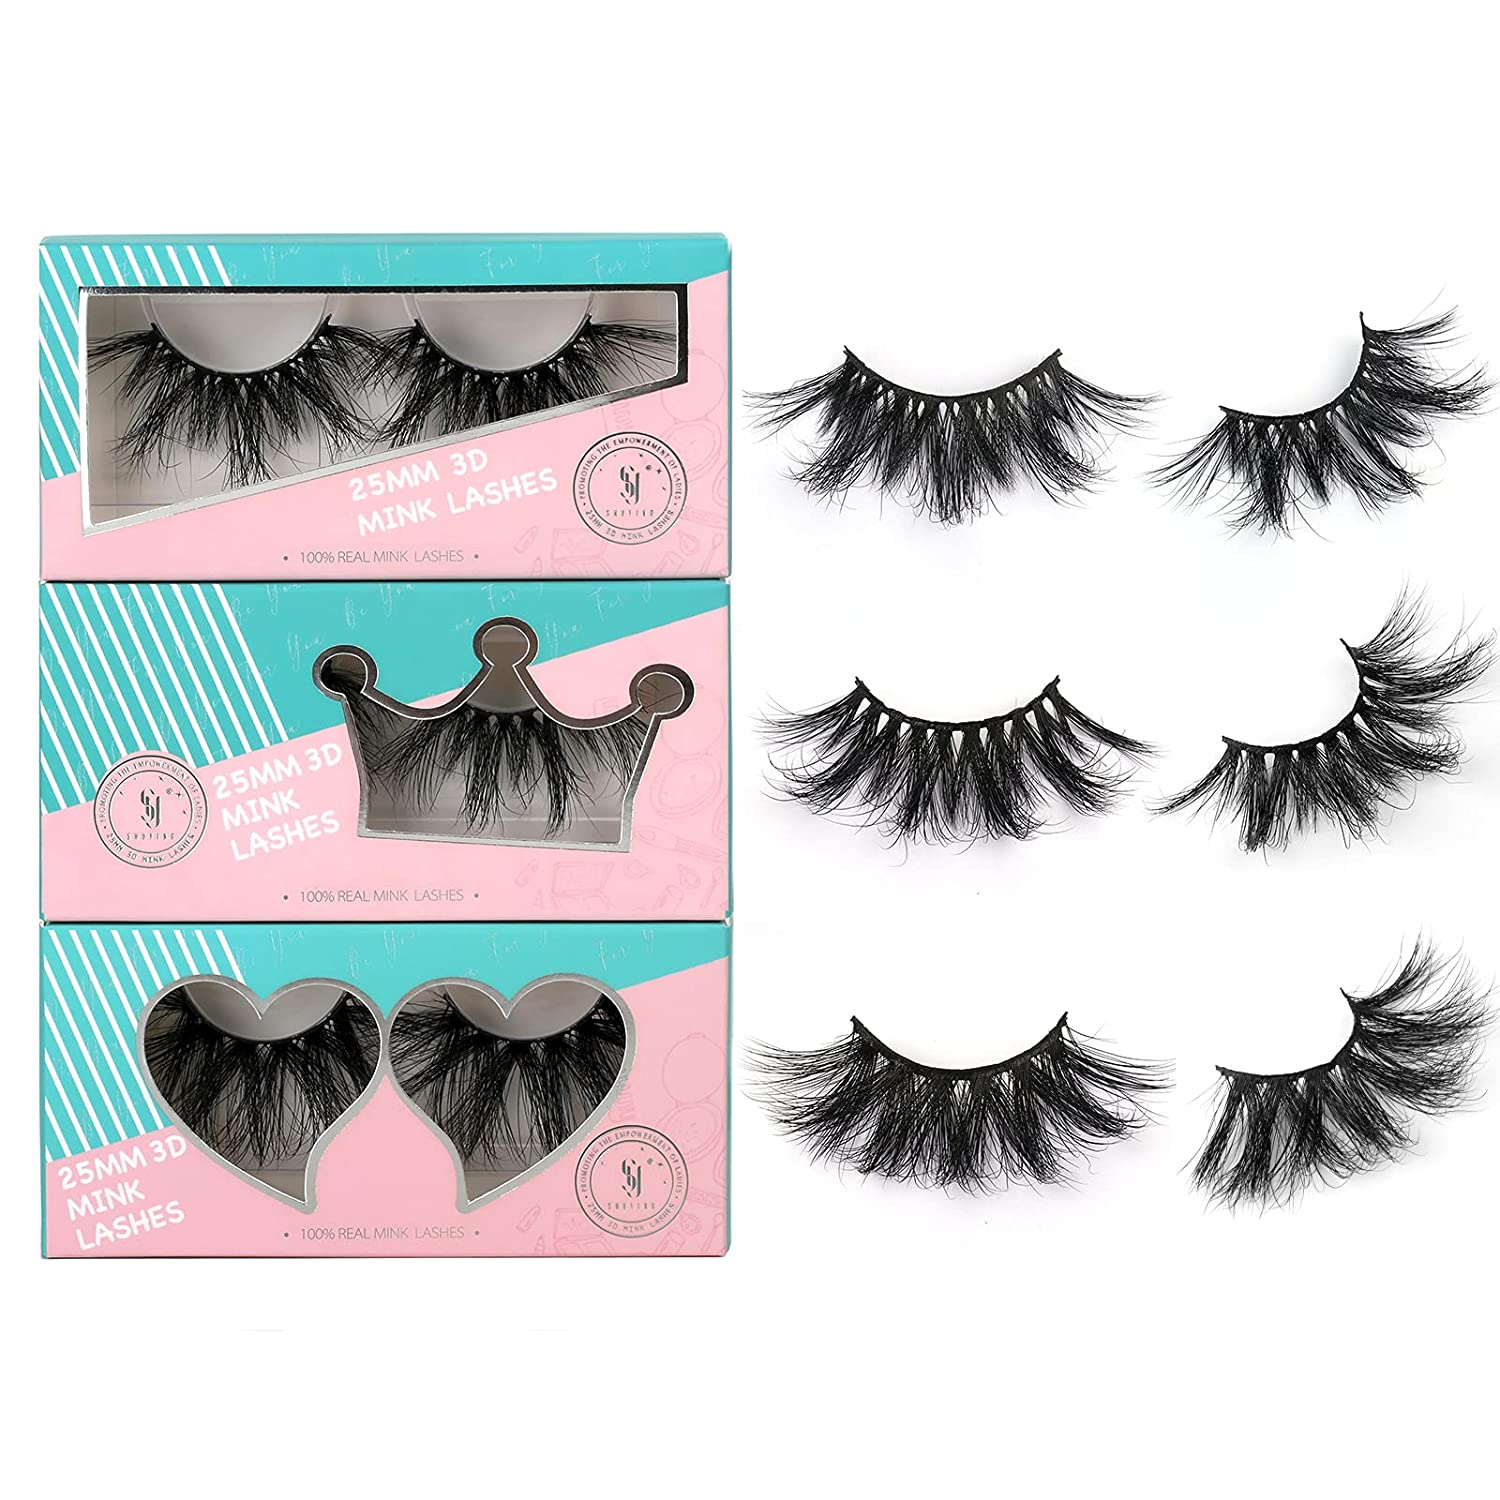 SY SHUYING 25mm Lashes 3D Fluffy False Wholesale Super-cheap Real Dramatic Mink